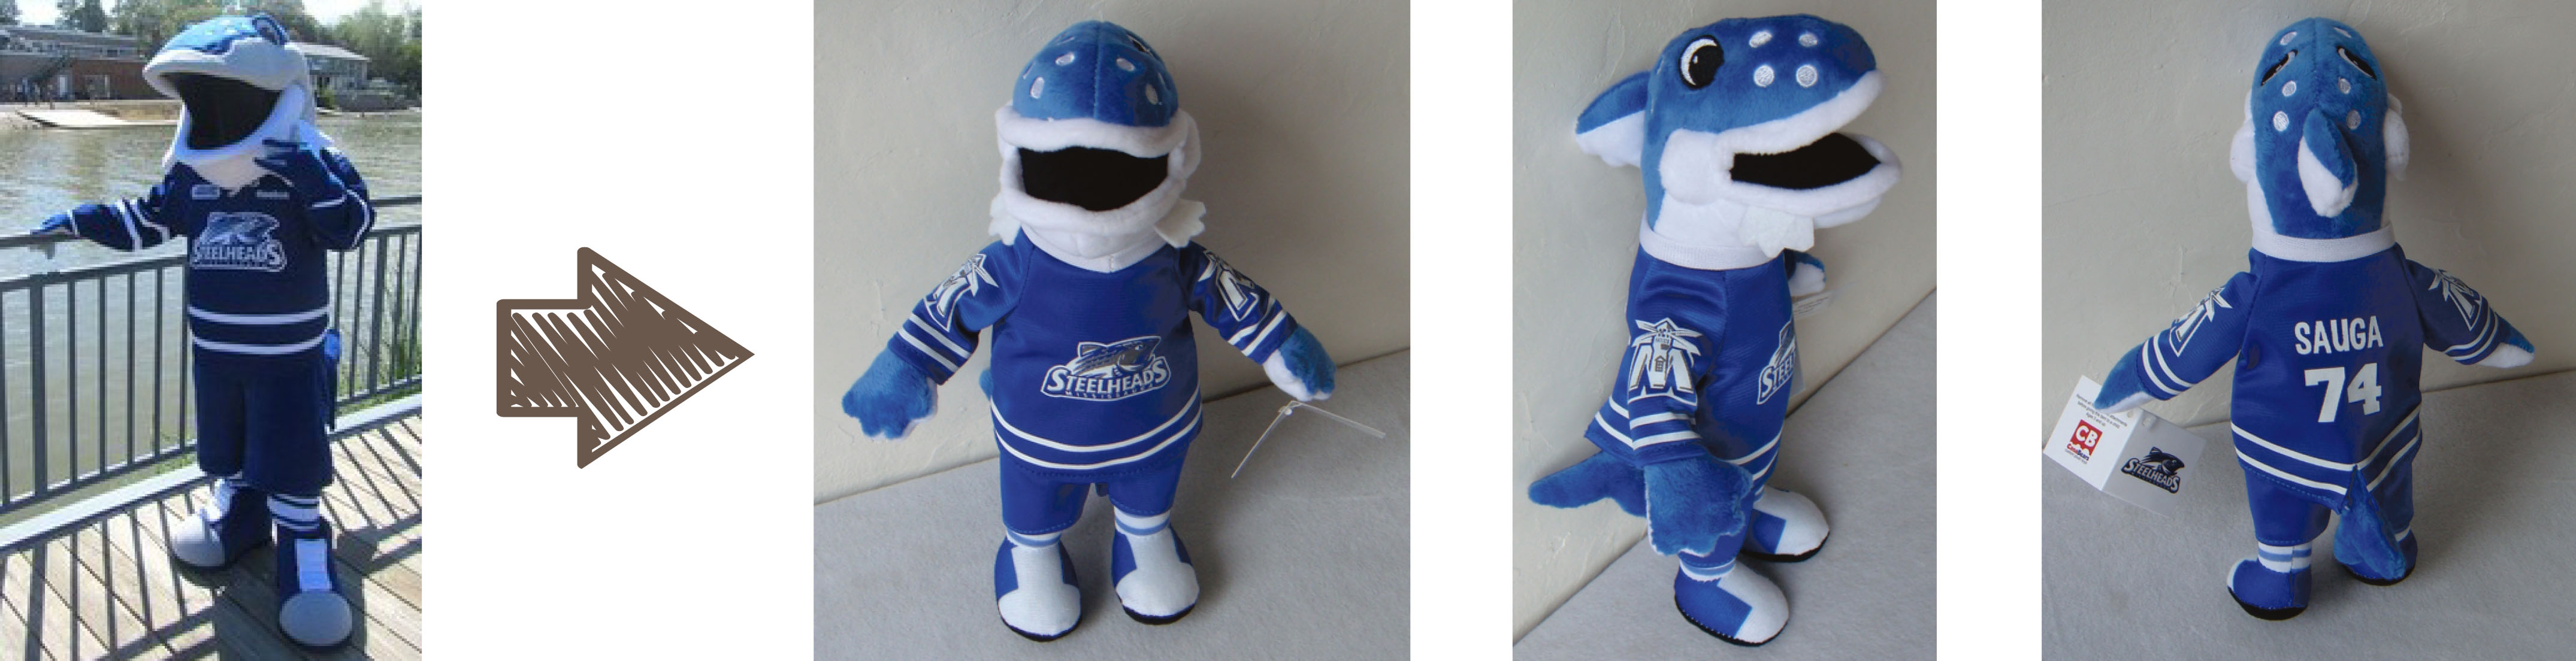 Mississauga Steelheads mascot stuffed animal